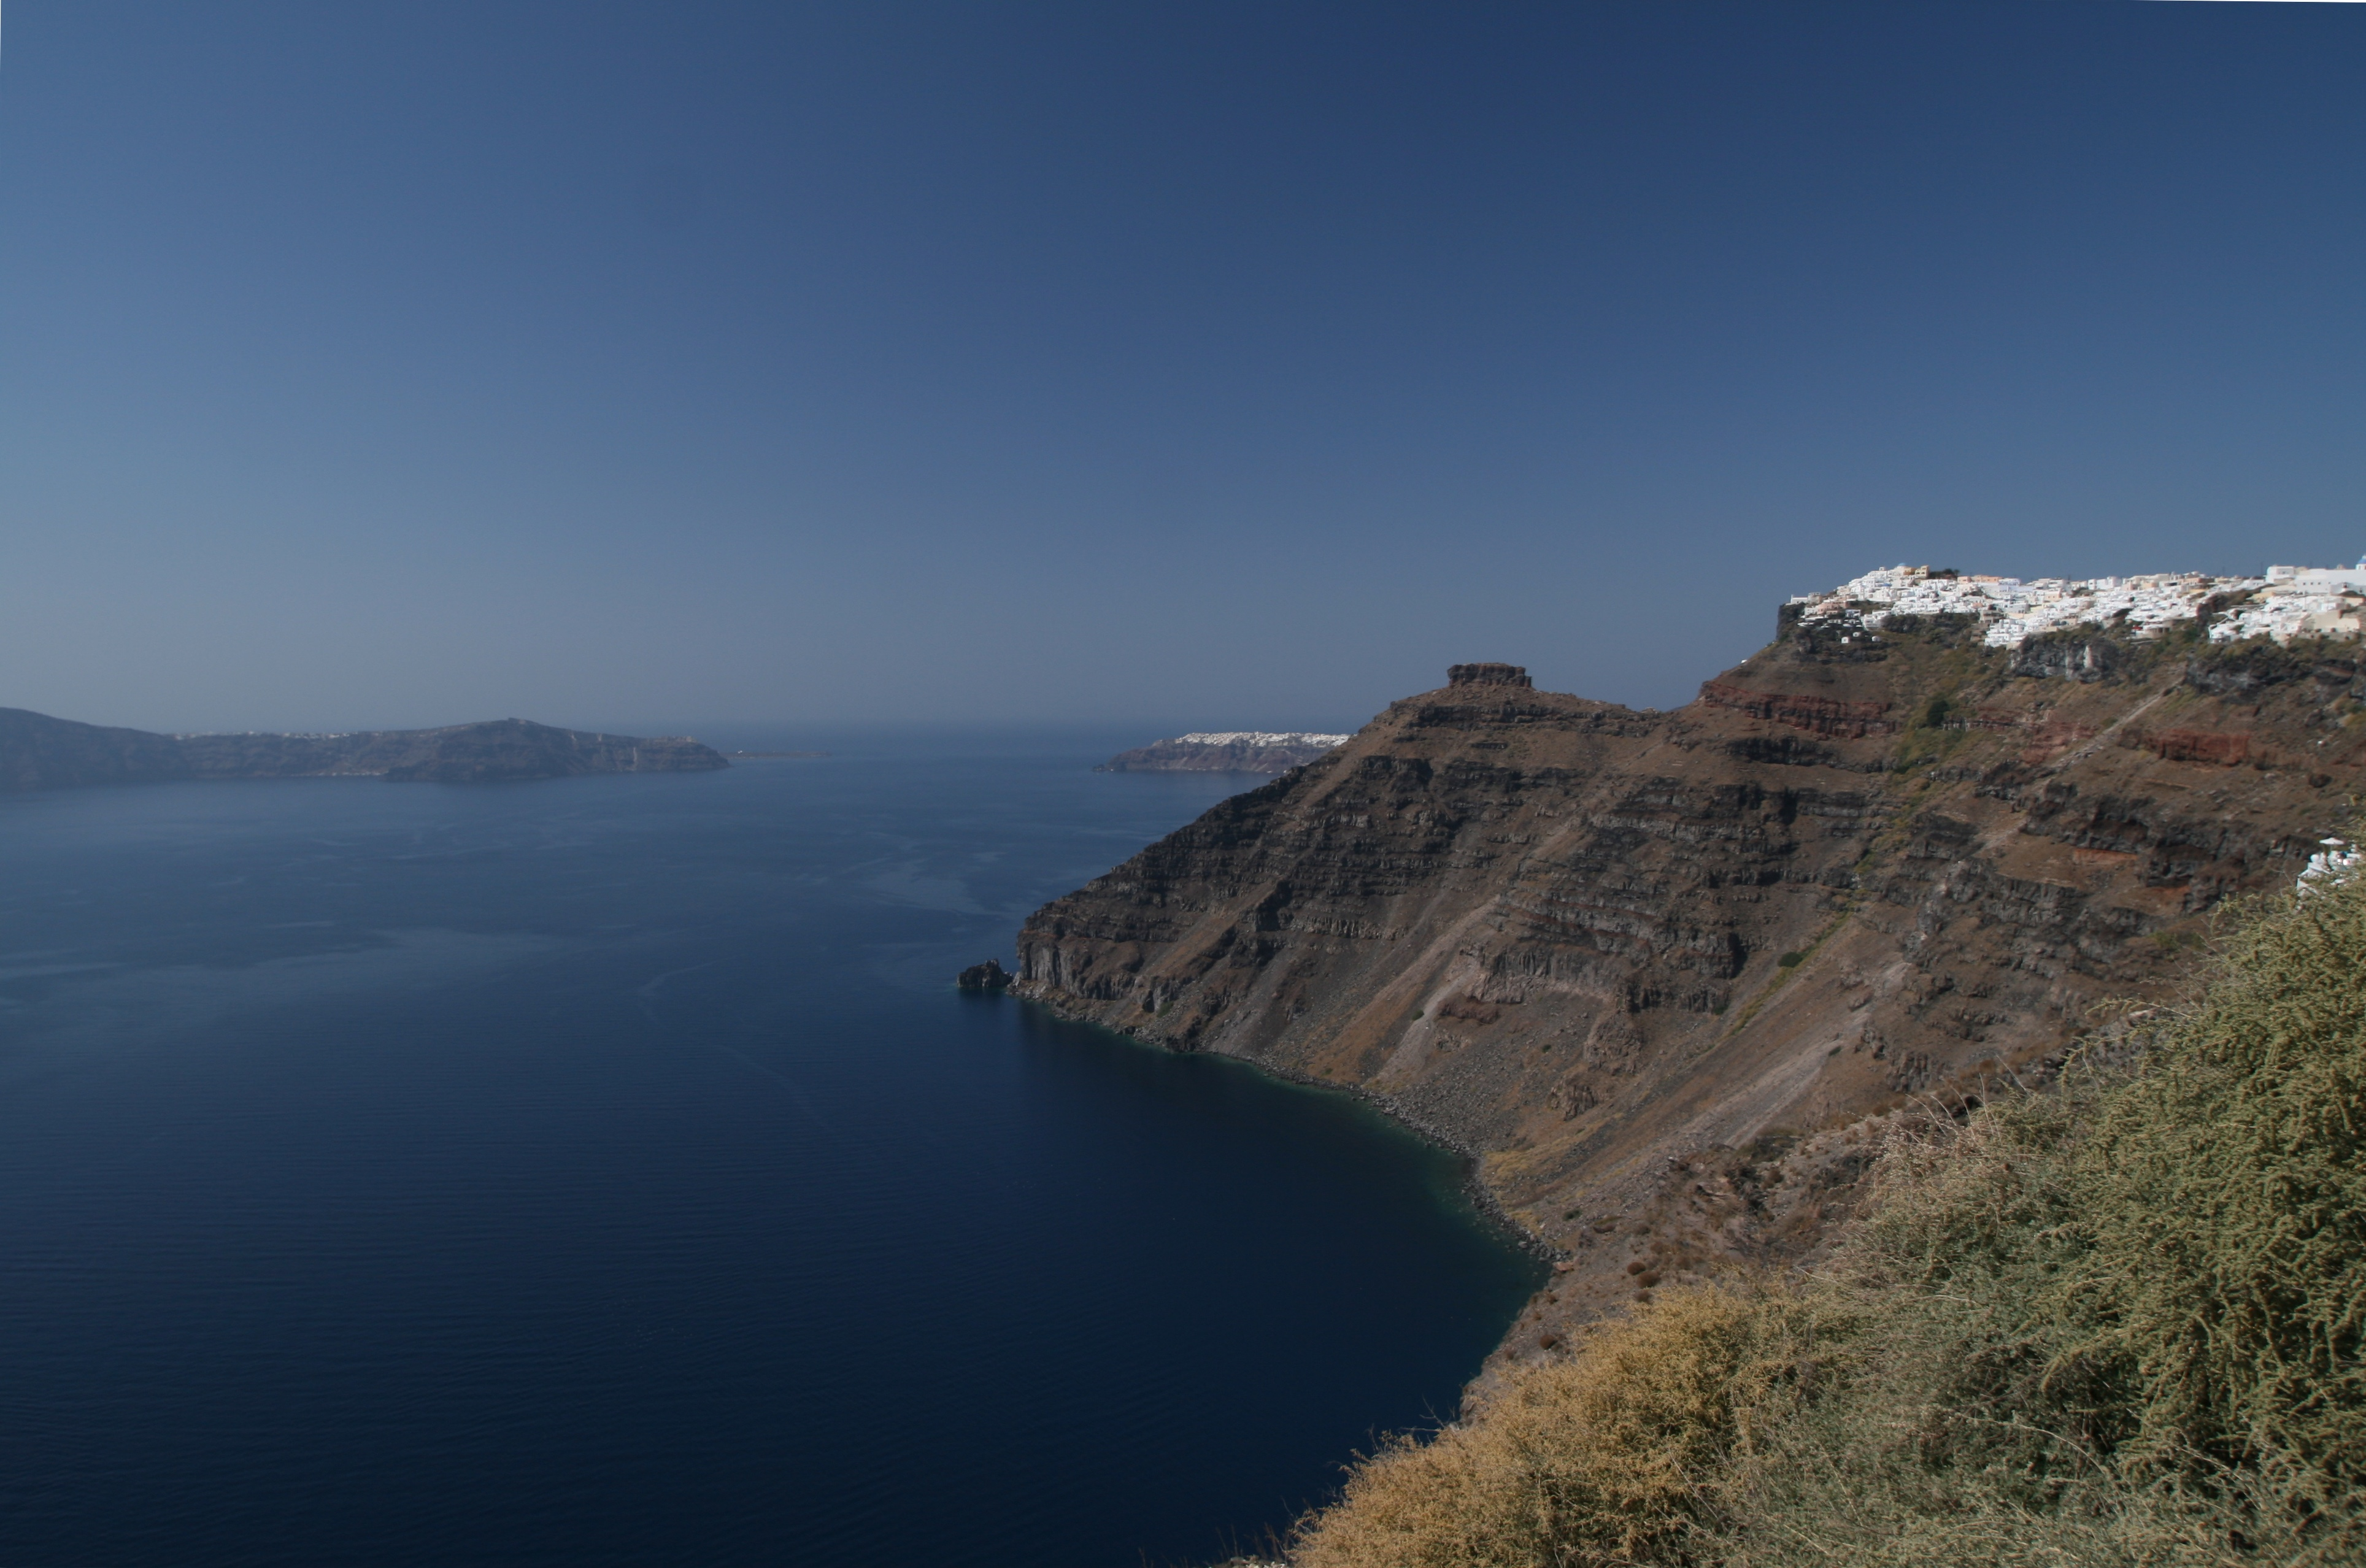 Santorini and the Mediterranean